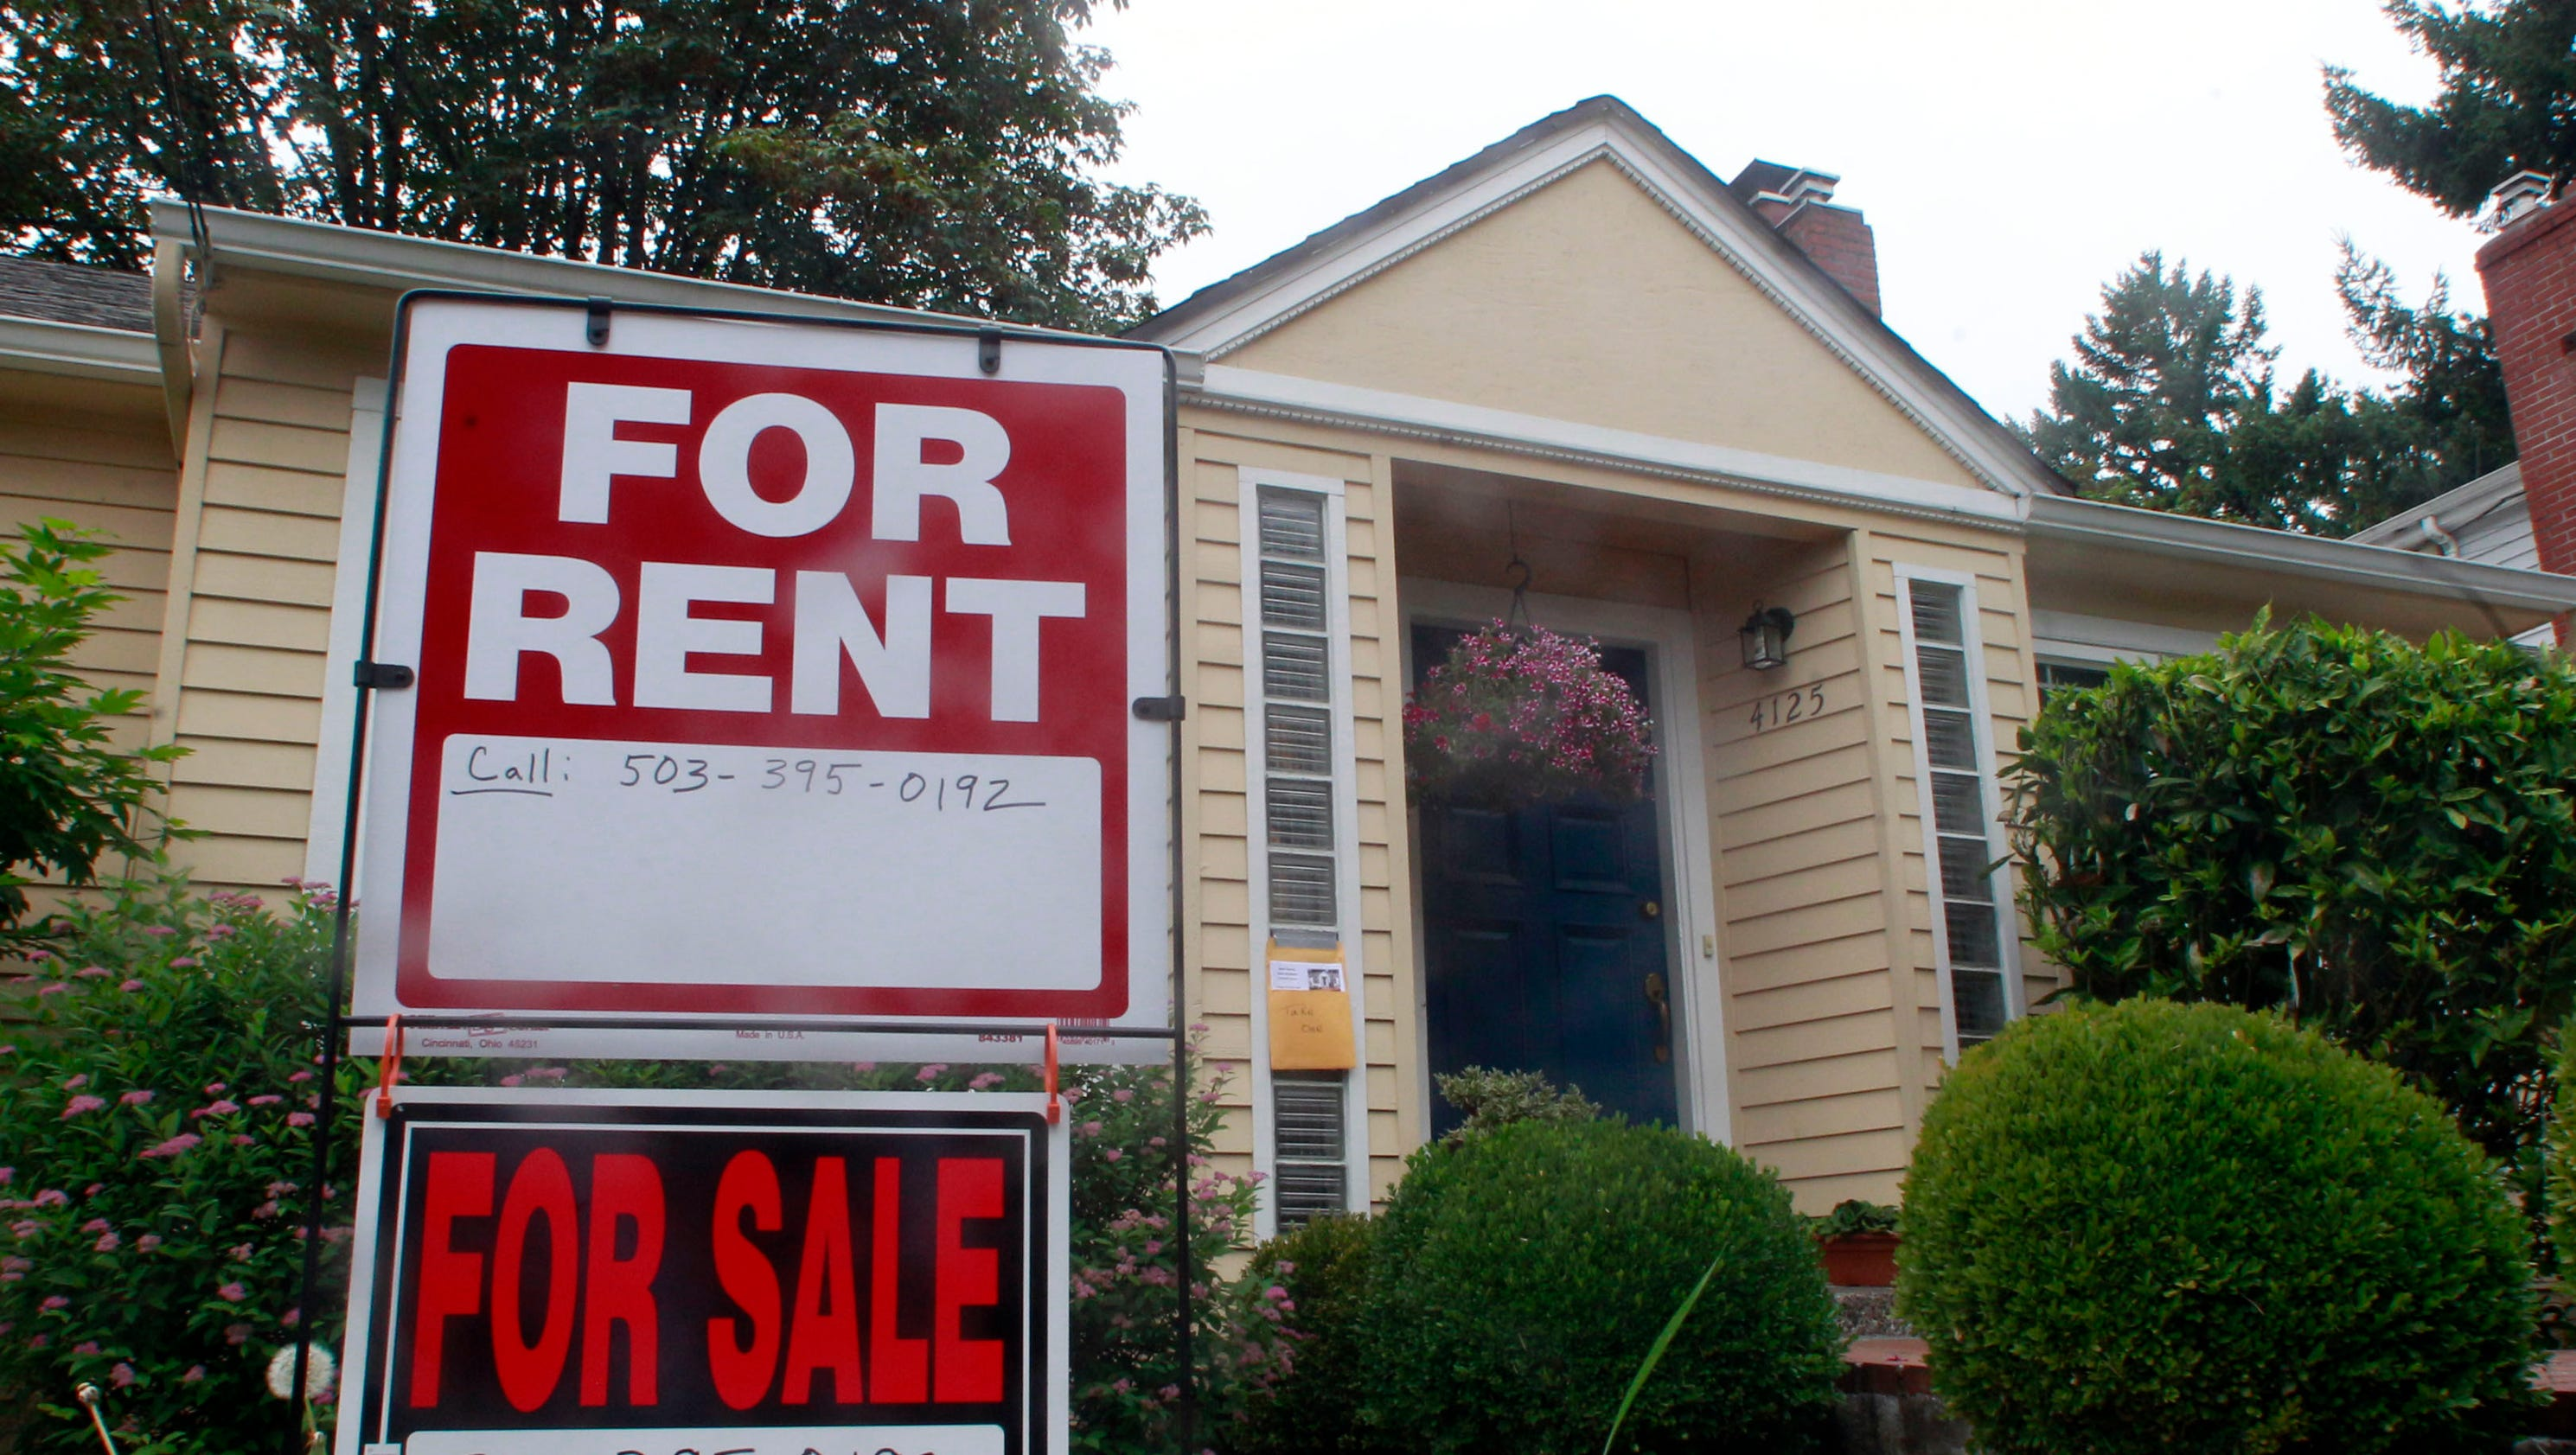 rent or own a home  16 cities where it u2019s more affordable